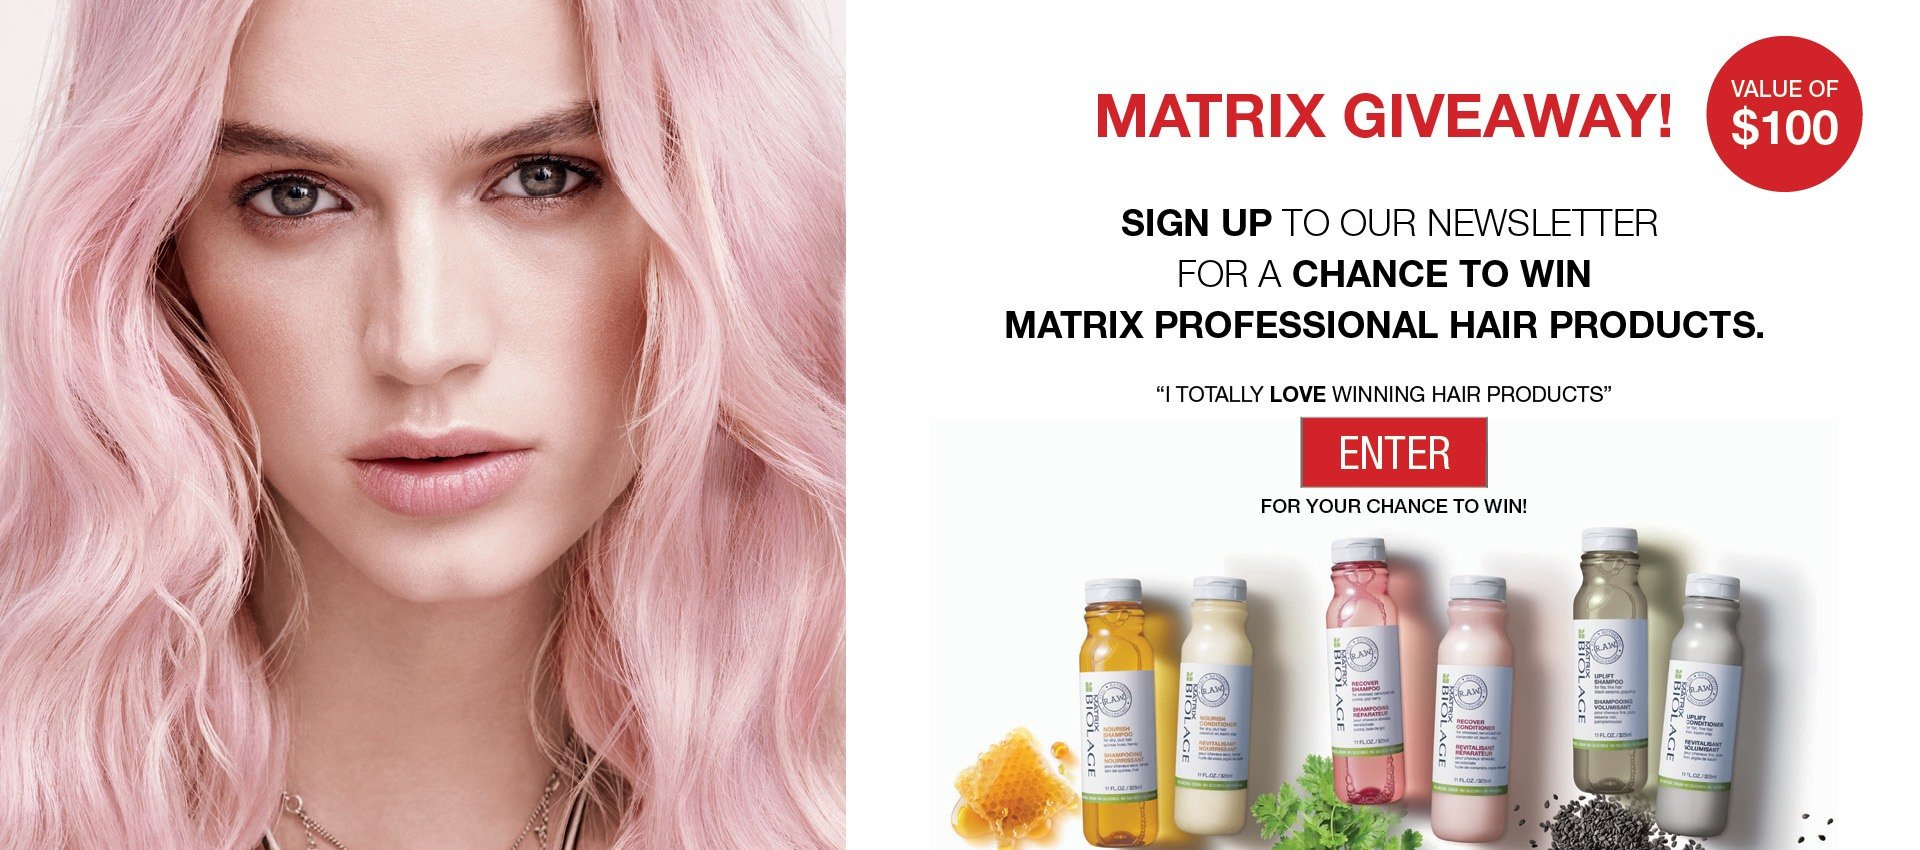 Matrix giveaway free hair products